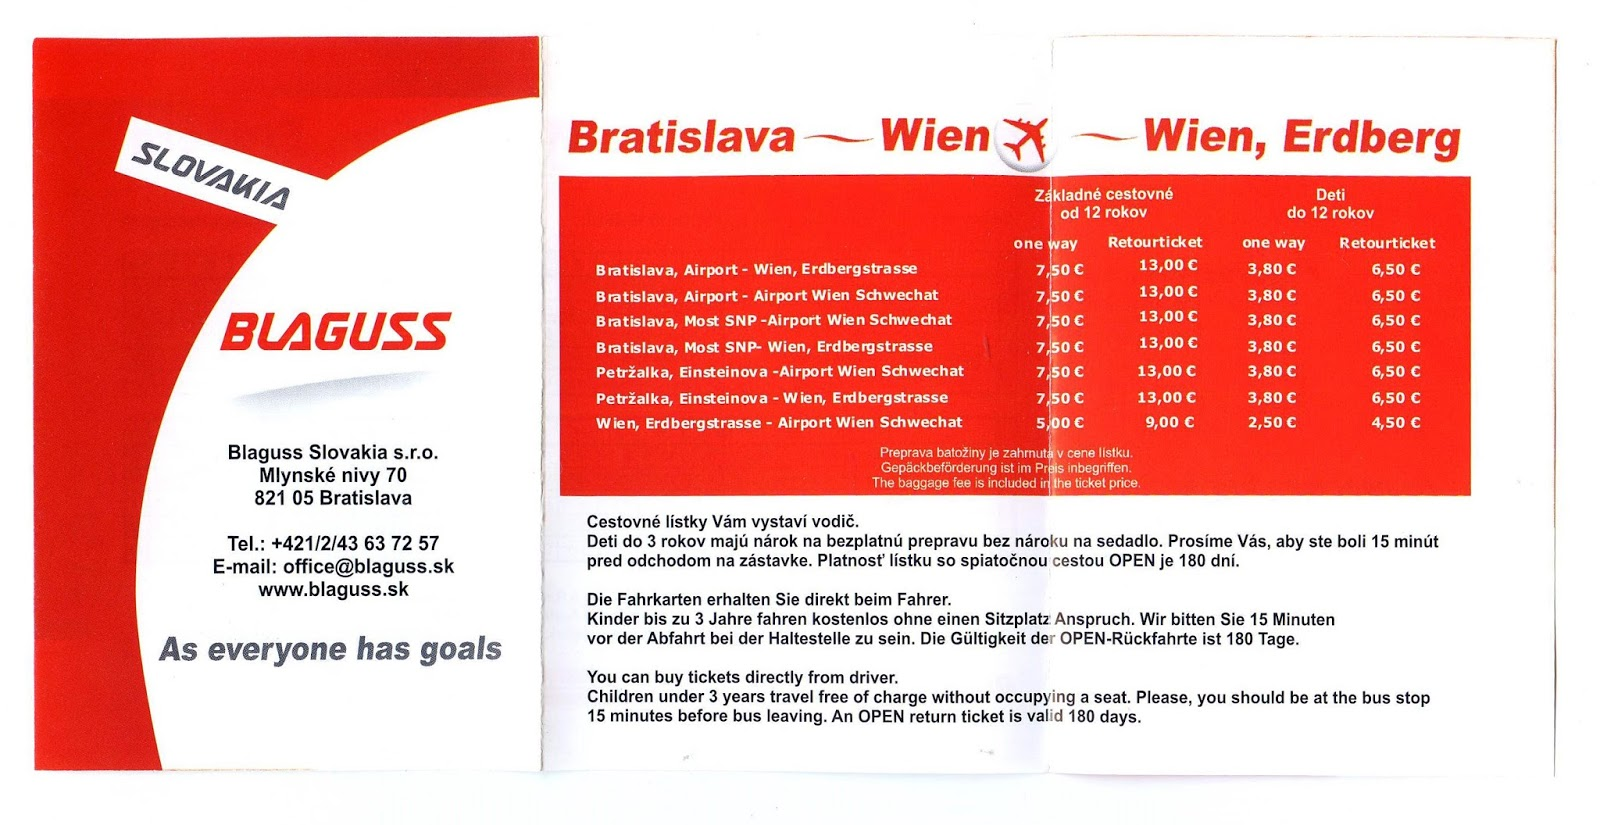 getting from Bratislava to Vienna, Wien, travel across europe, bus, coach, train, hydrofoil, ferry, price, cheap